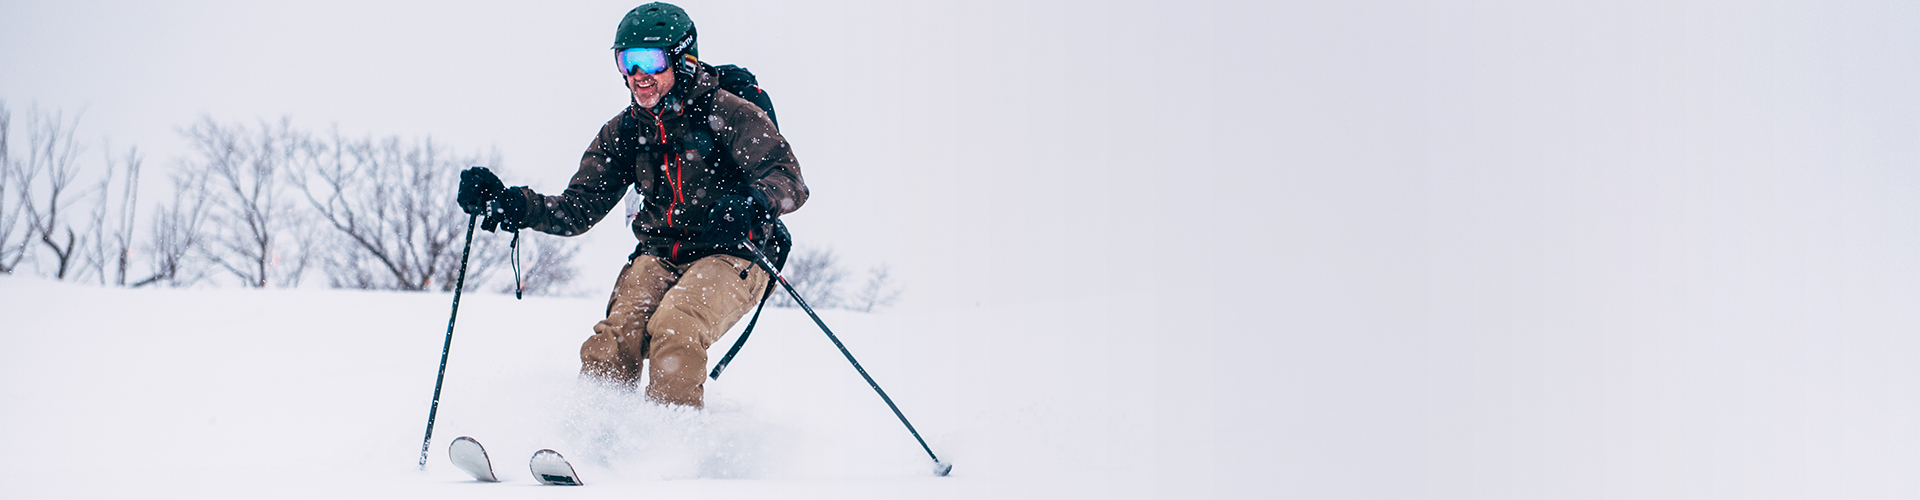 Man Skiing in Snow